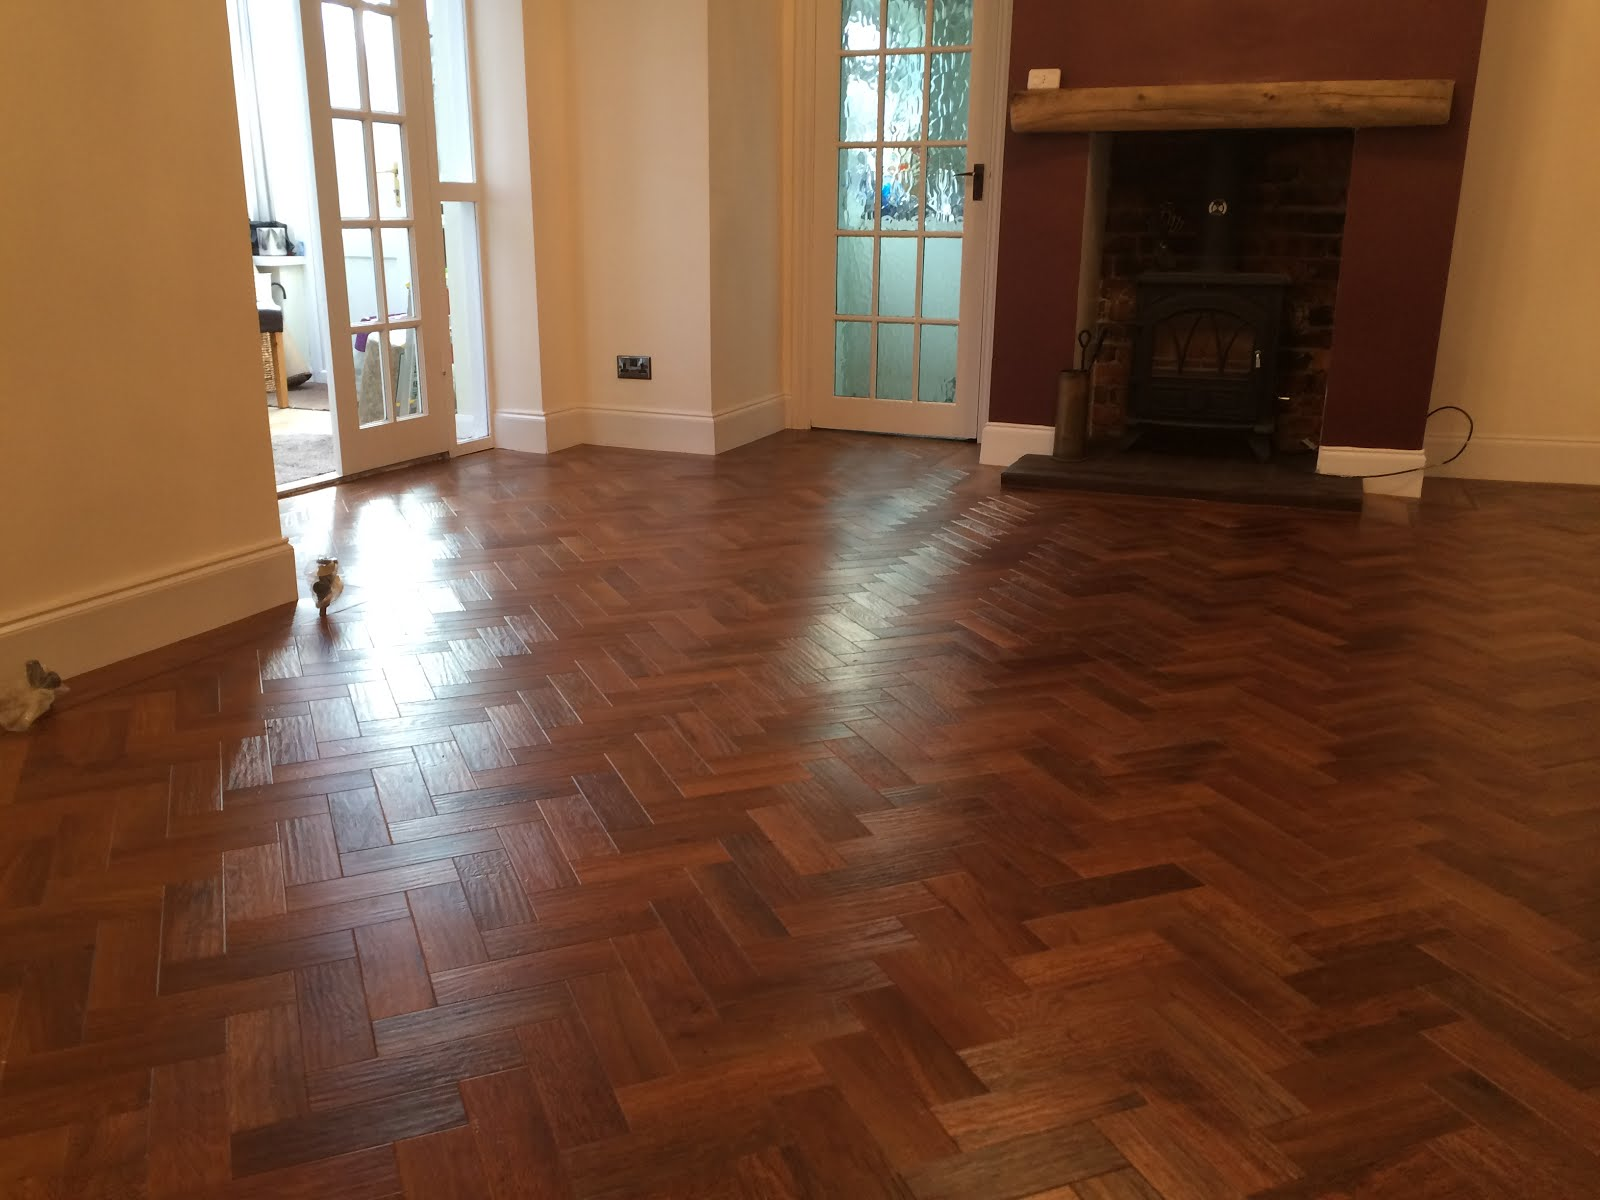 Specialist Floors North East: Karndean and Amtico - What ...